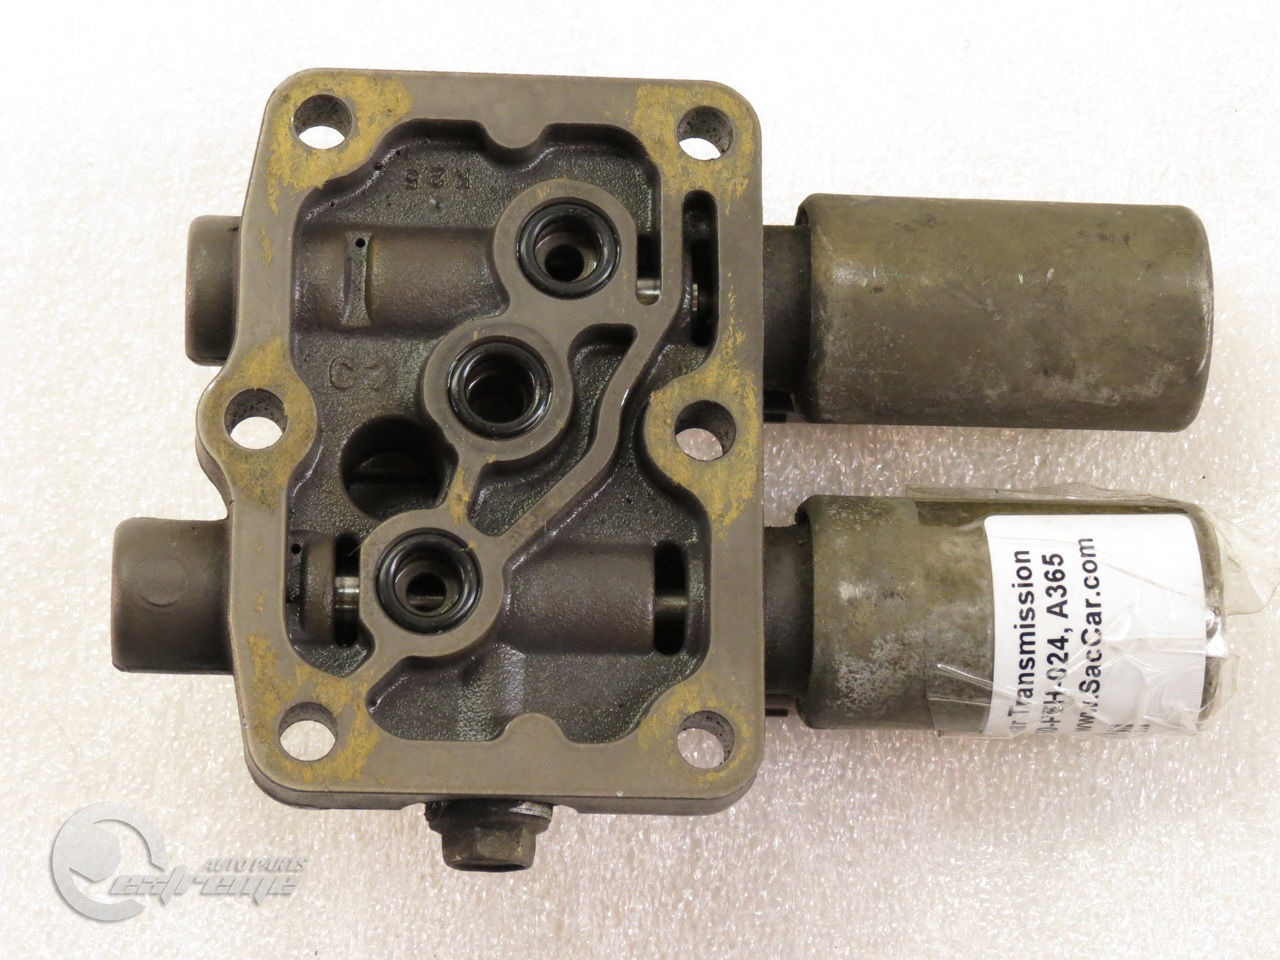 Honda Accord 98 99 00 01 02 Linear Auto Transmission Solenoid 28250-P6H-024